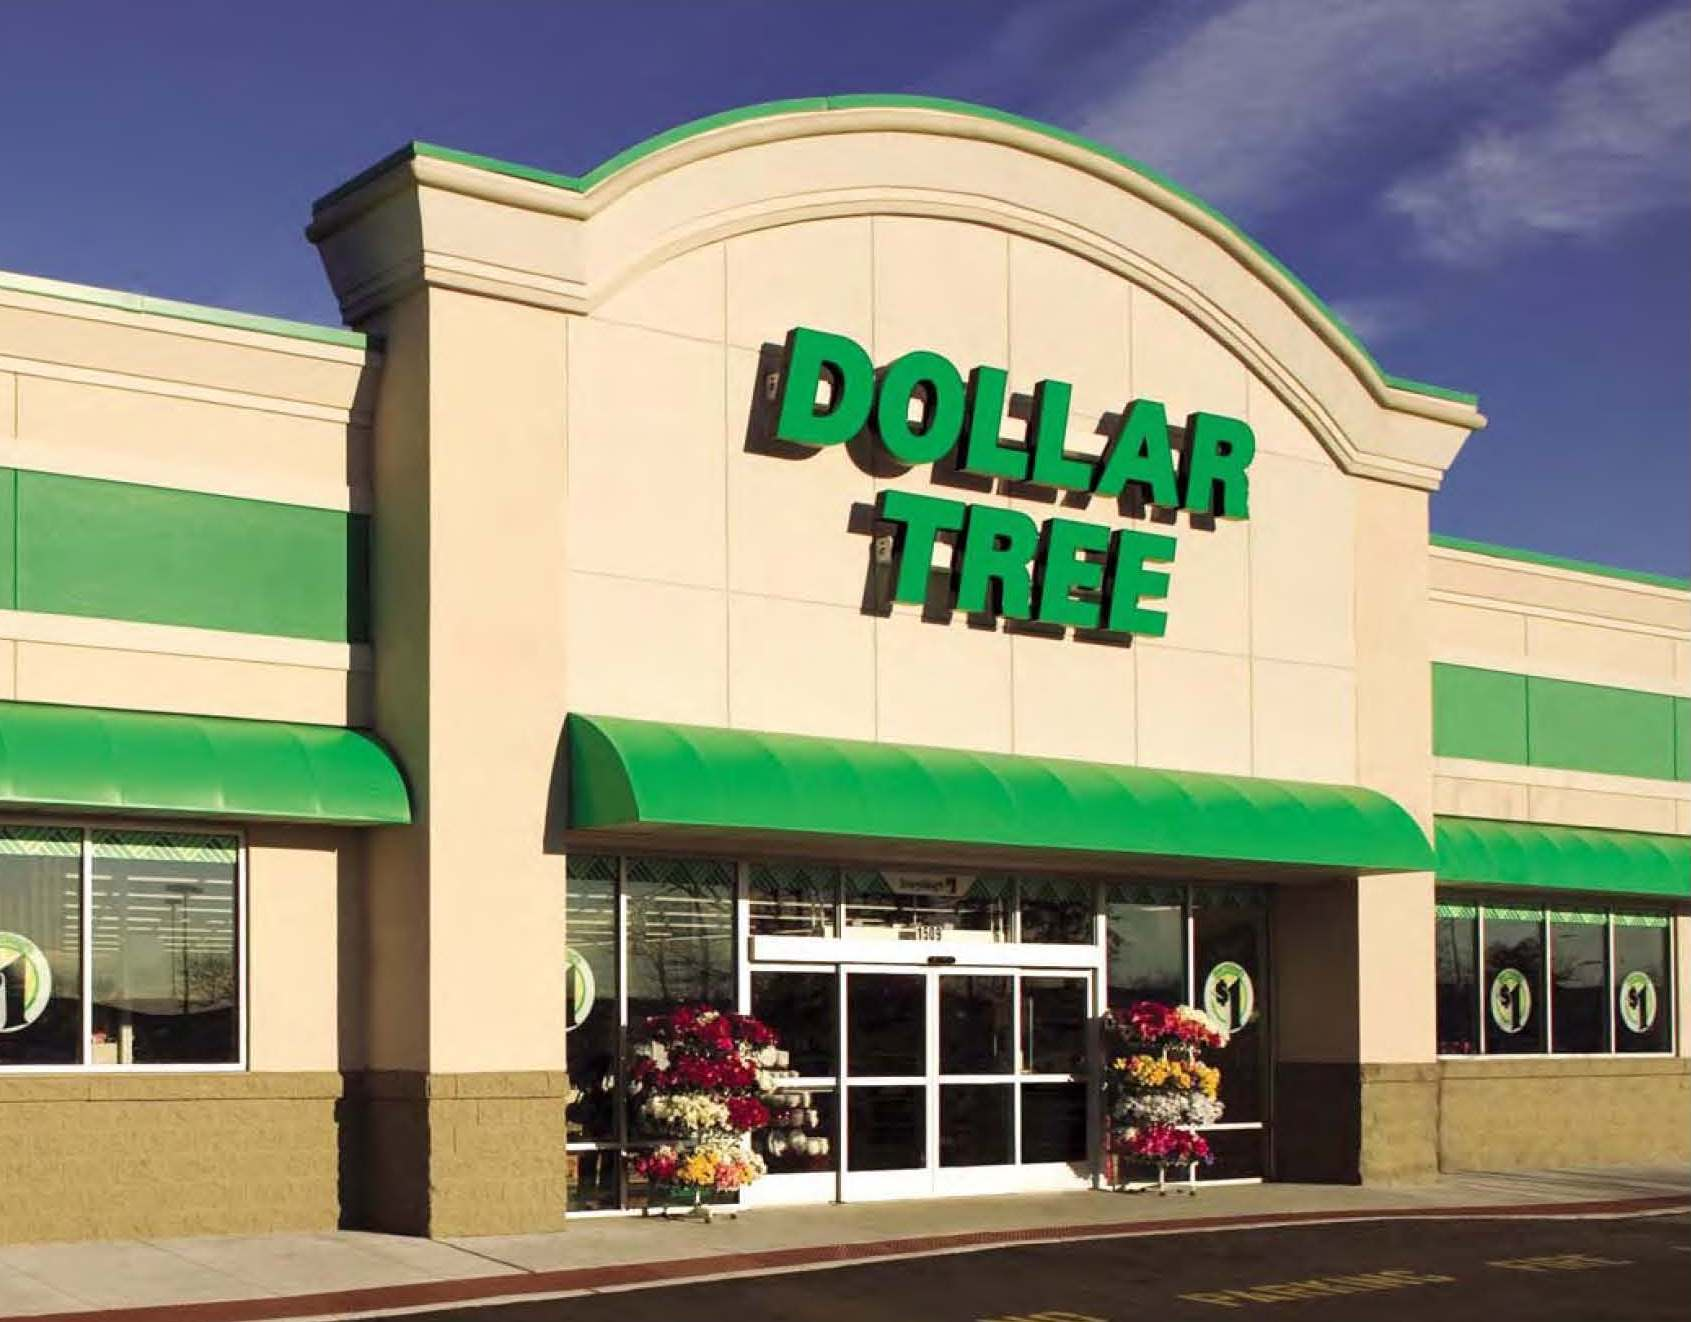 Dollar Tree is a 'true' dollar store In the world of dollar stores, there are two kinds of players. There are the true dollar stores like Dollar Tree and 99 Cents Only where everything is $1 or less — no exceptions.